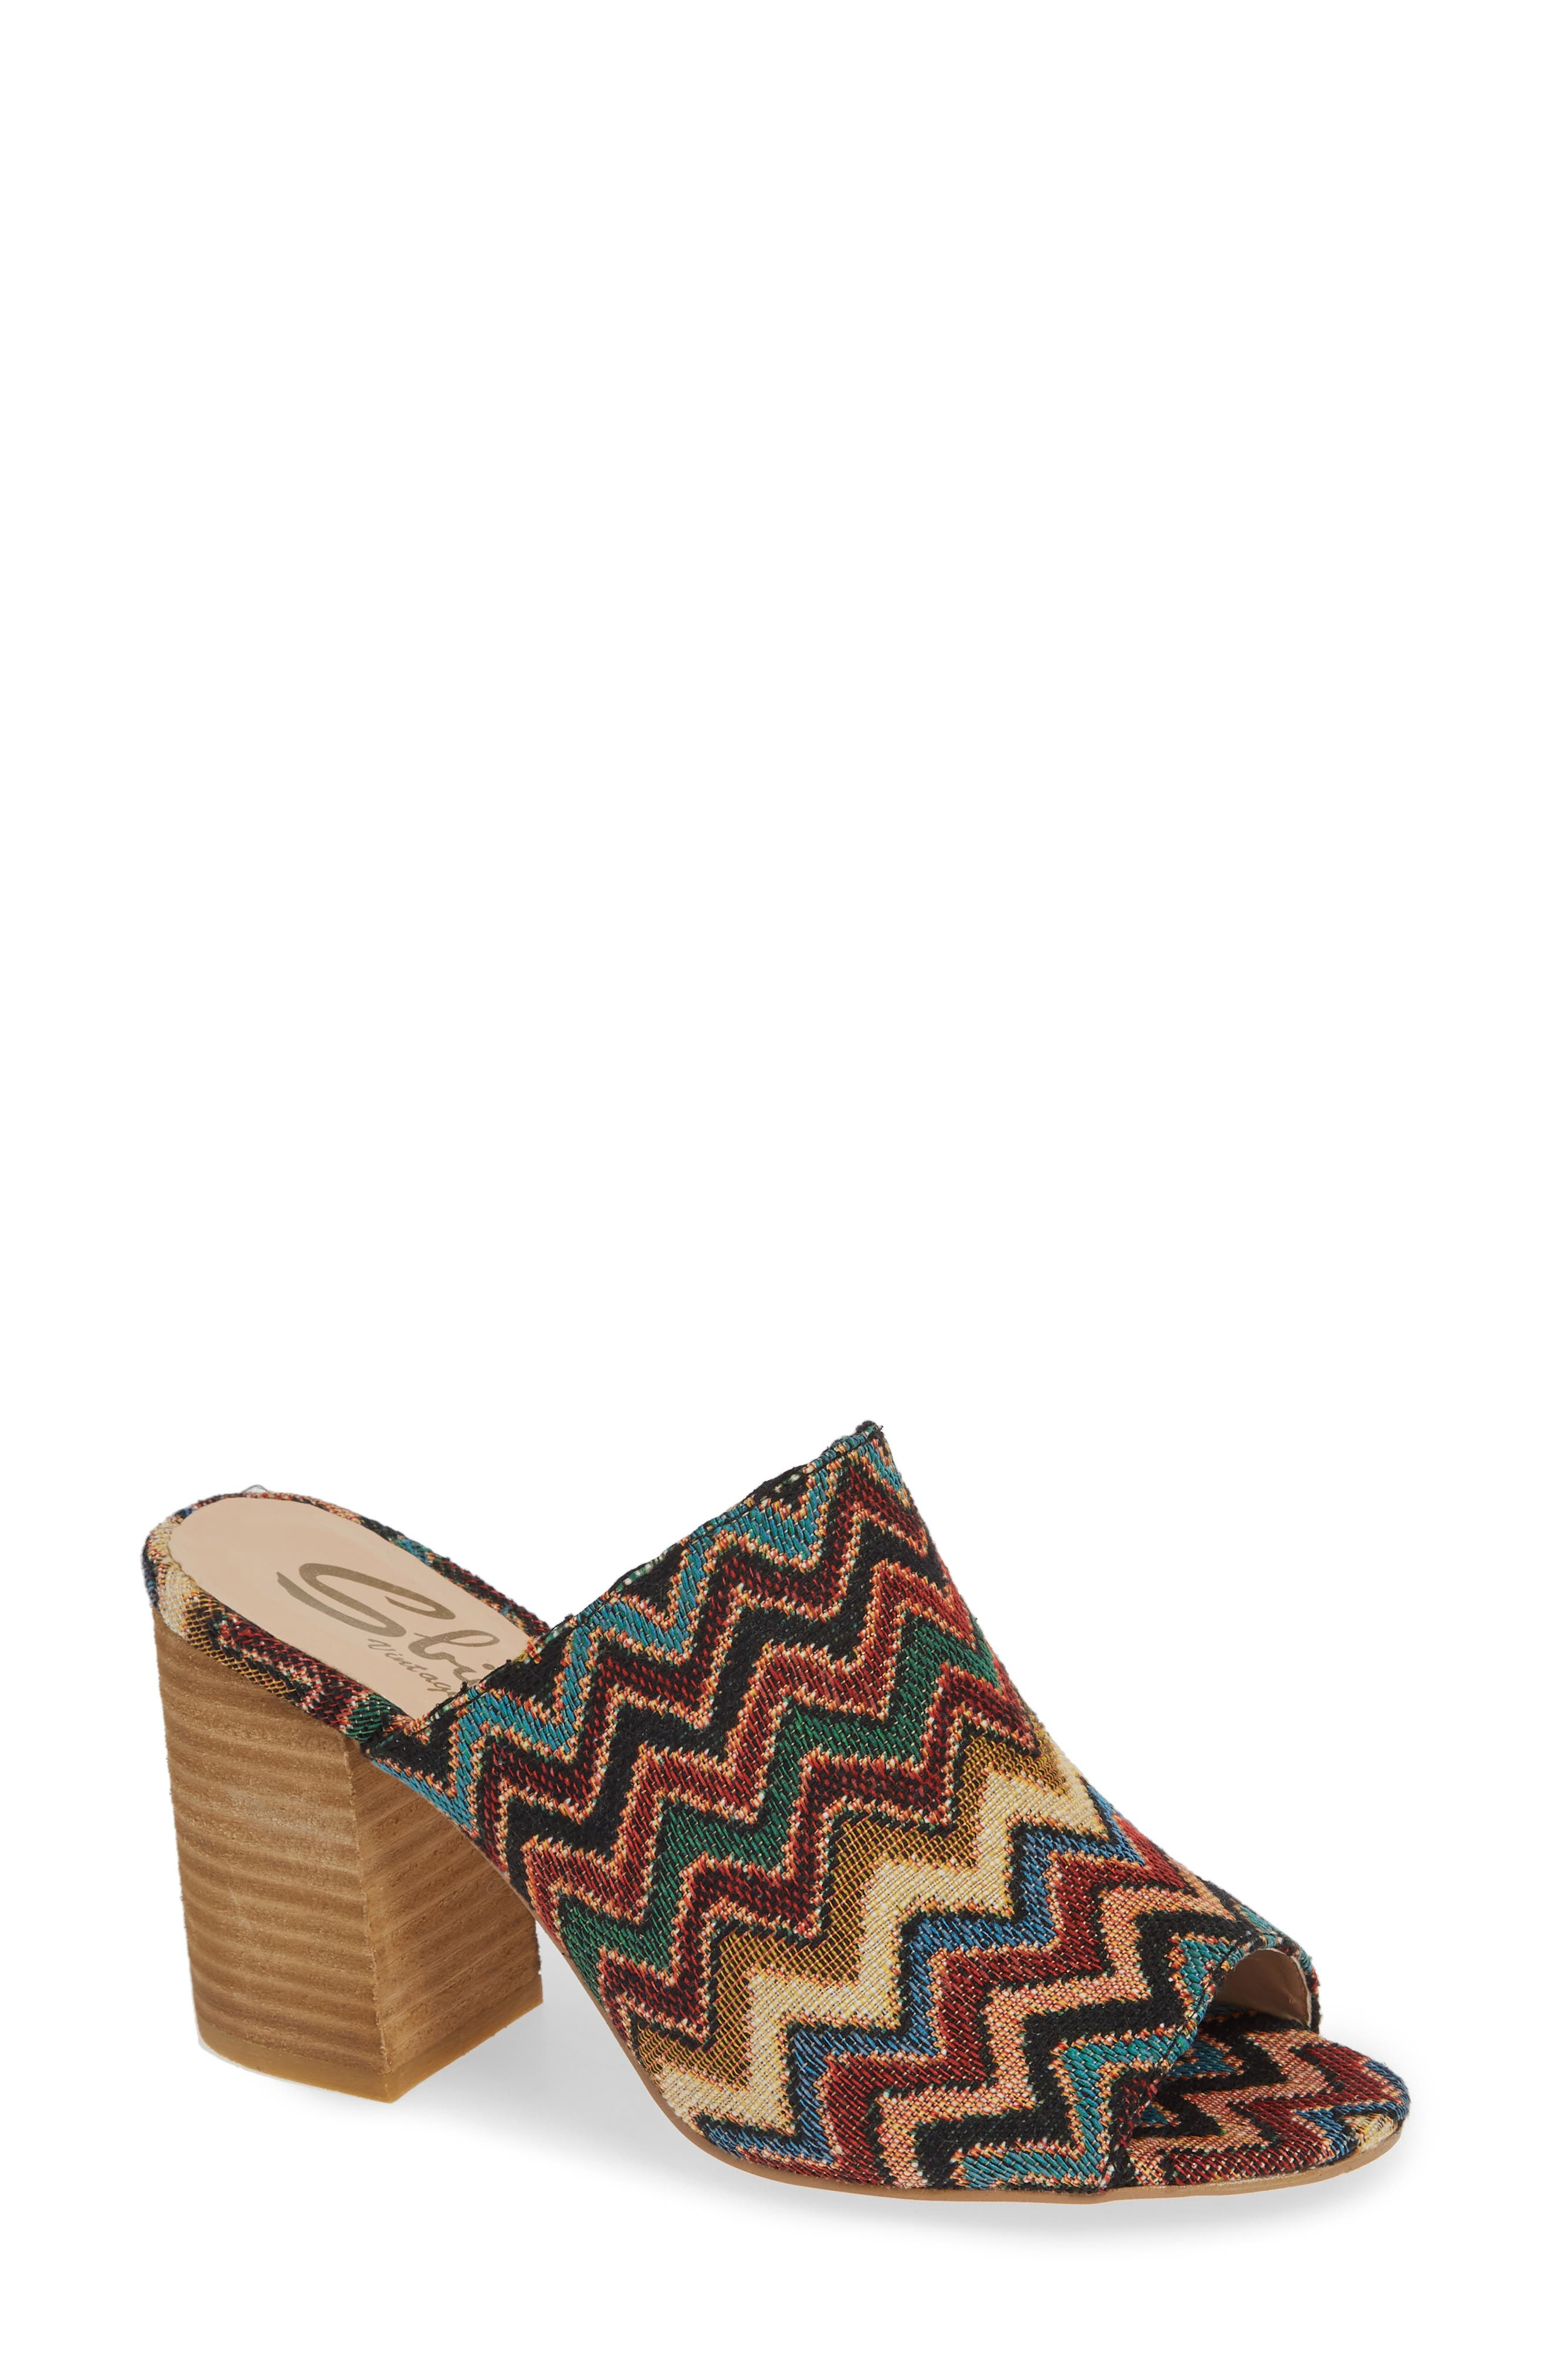 Helena Sandal,                         Main,                         color, MULTICOLOR FABRIC